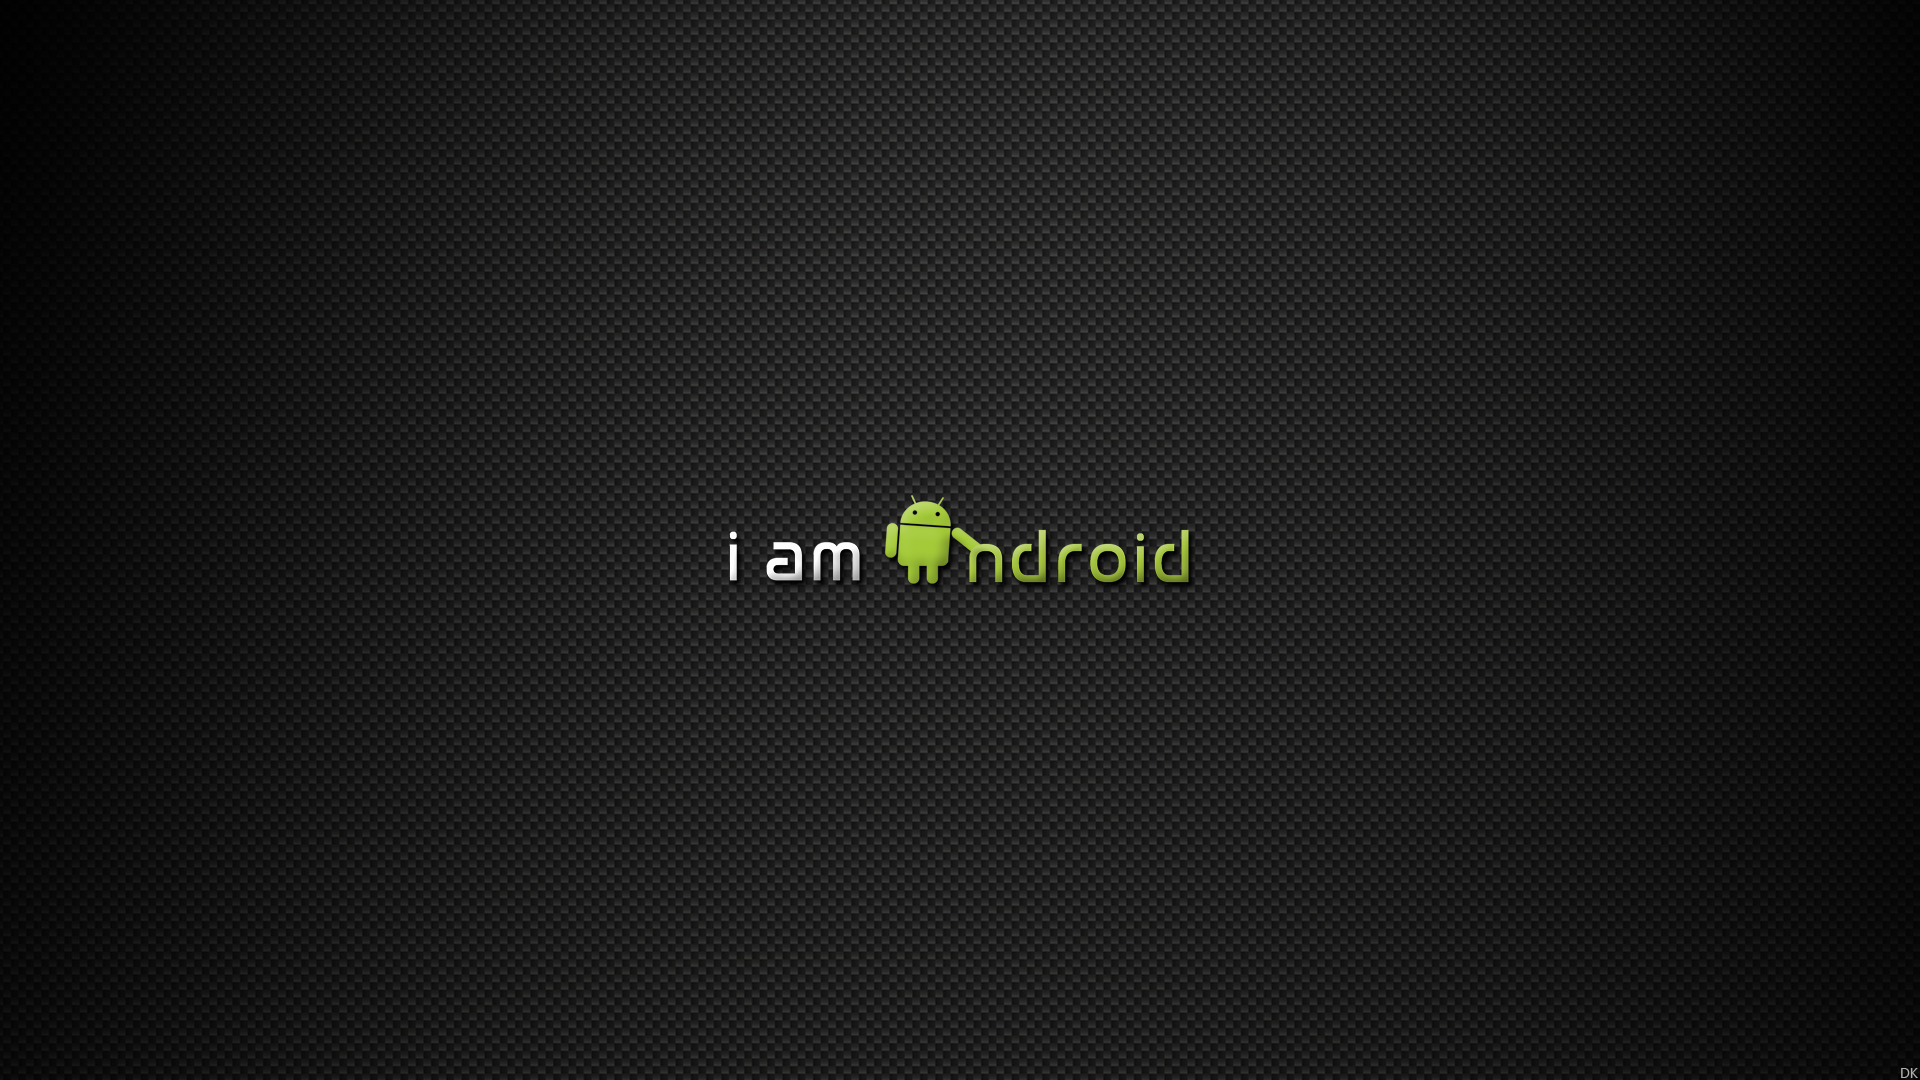 Android Logo Black Background